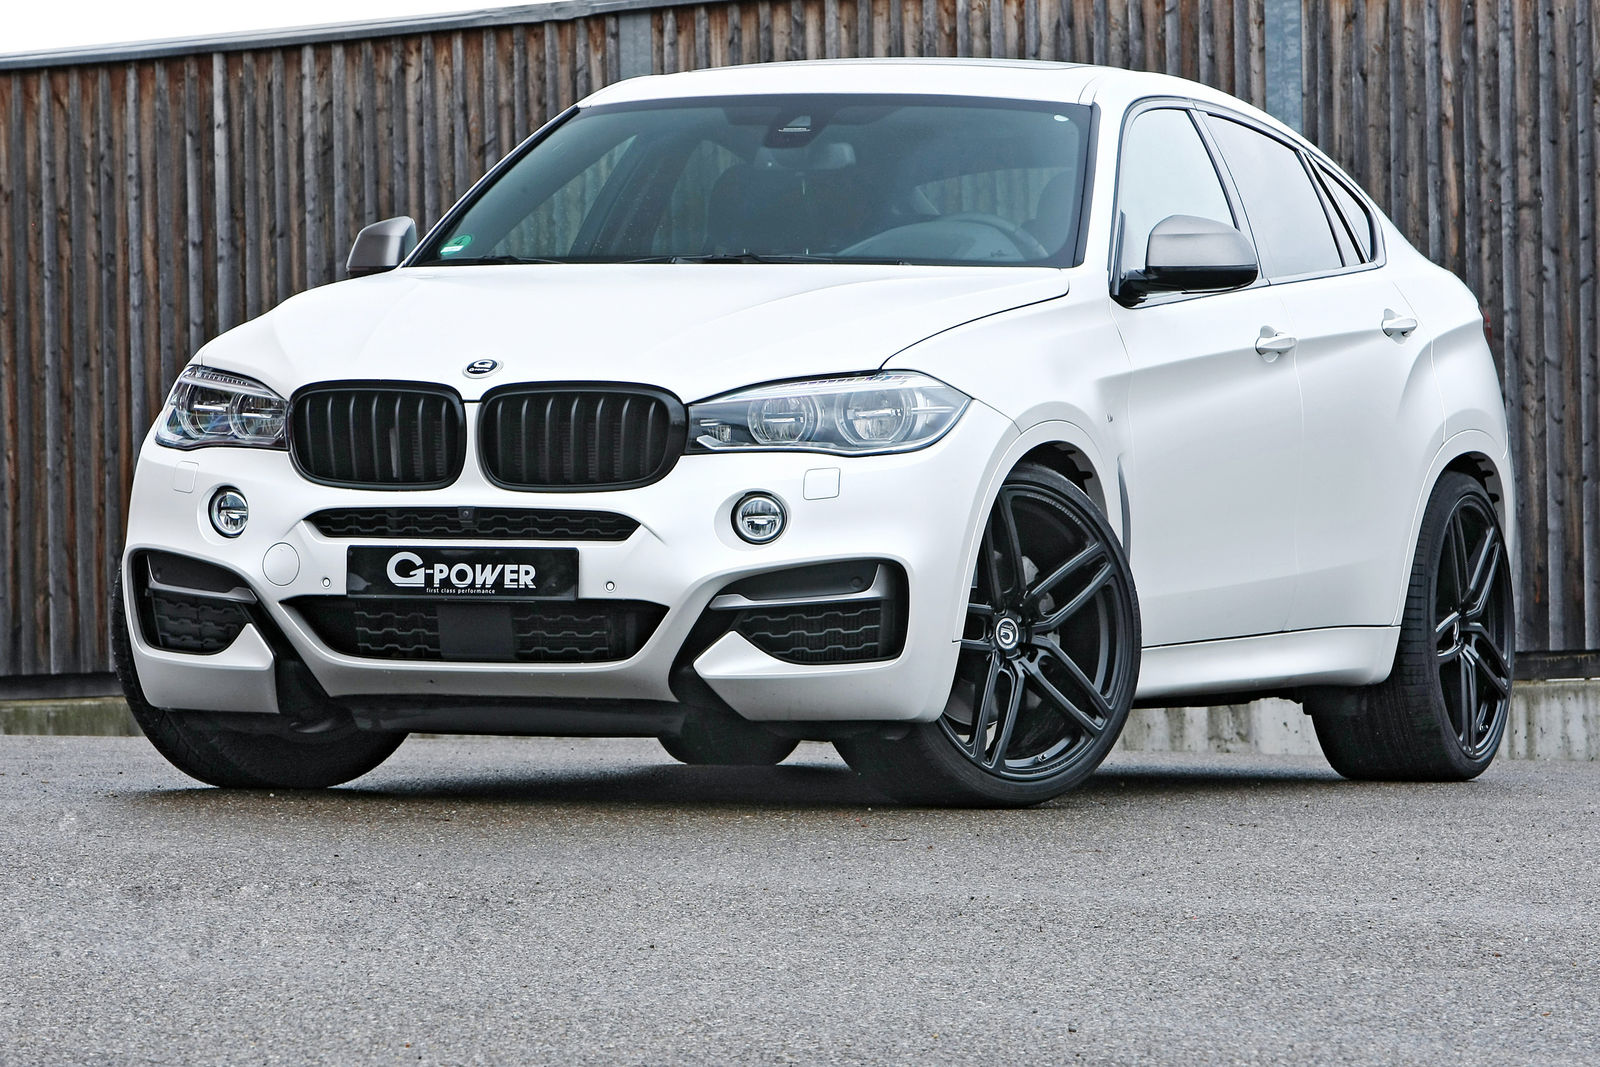 g power tunes bmw x6 m50d to 455 hp autoevolution. Black Bedroom Furniture Sets. Home Design Ideas